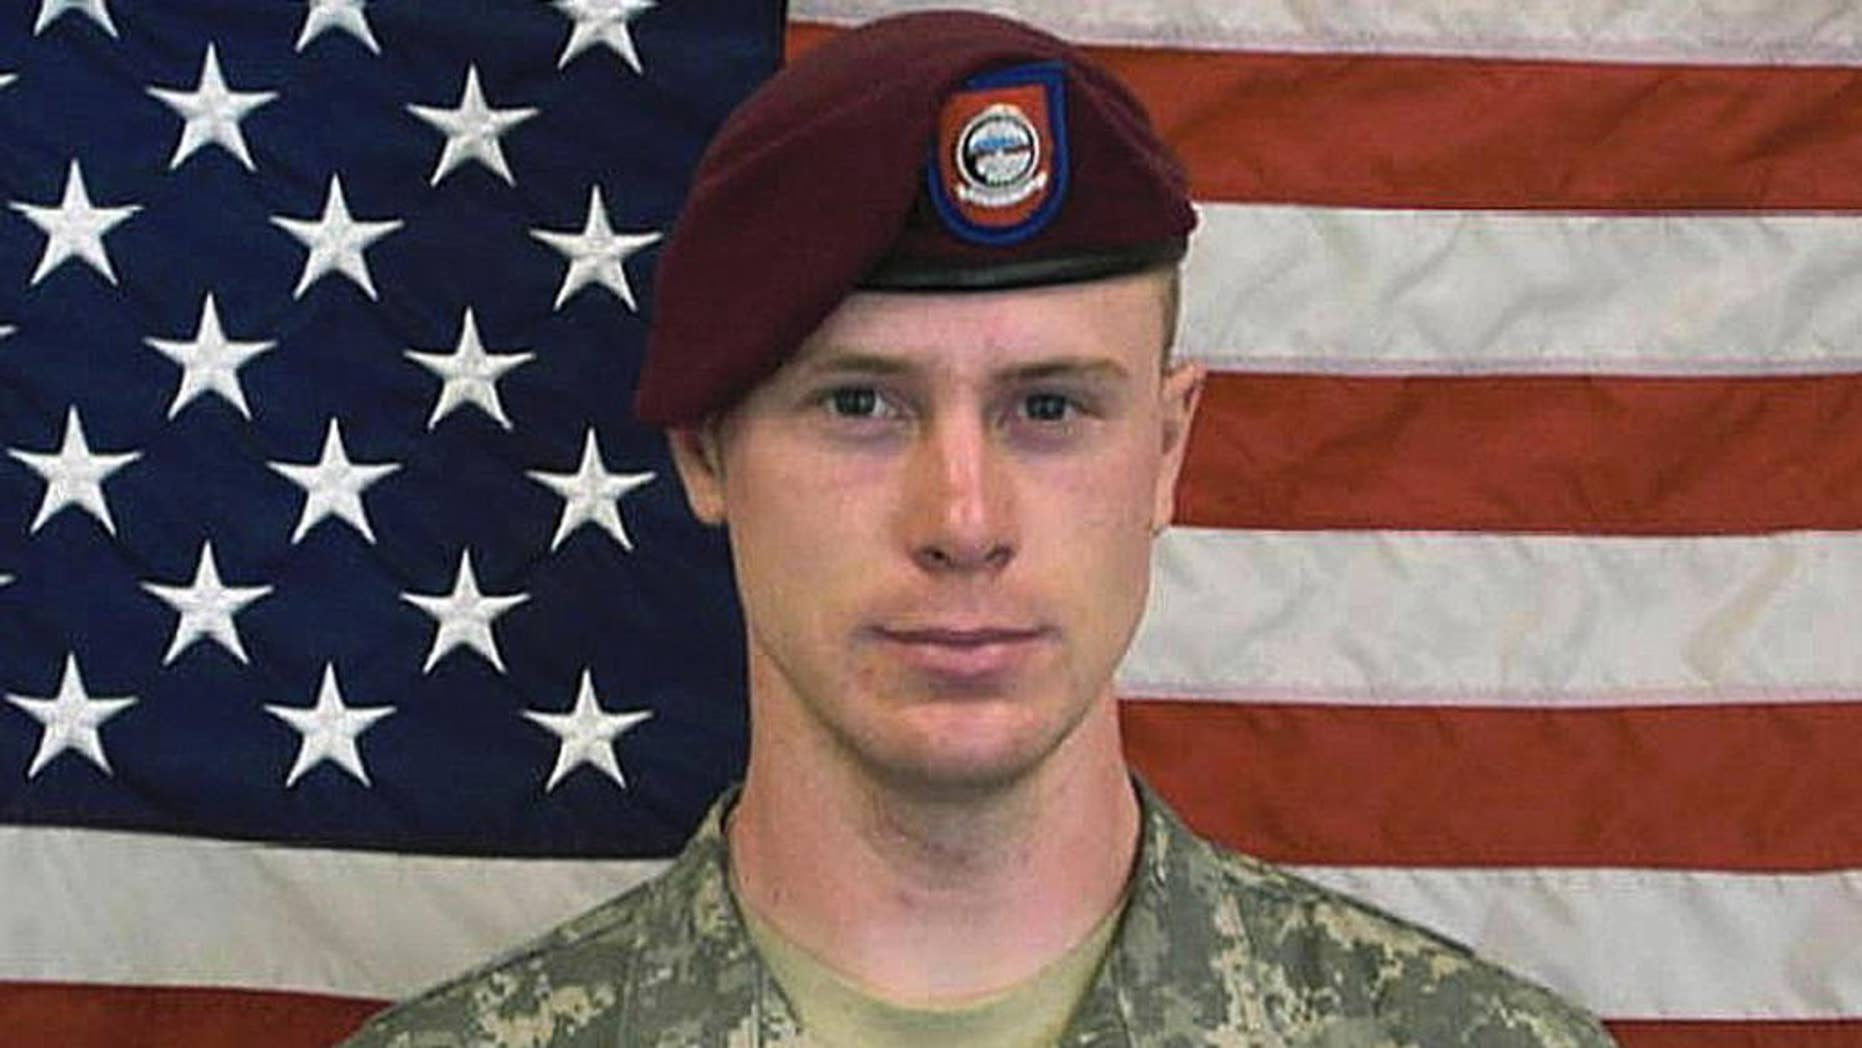 FILE - This undated file photo provided by the U.S. Army shows Sgt. Bowe Bergdahl. The U.S. Army says it has prosecuted about 1,900 cases of desertion since 20021. However, tens of thousands of soldiers have fled the service in the face of deadly combat, long and multiple deployments in Iraq and Afghanistan and strains on military families. The data reflects how rarely the military takes desertion cases to court. And it underscores the complexities of such cases as a top military commander begins to review the investigation of Sgt. Bowe Bergdahl. (AP Photo/U.S. Army, File)